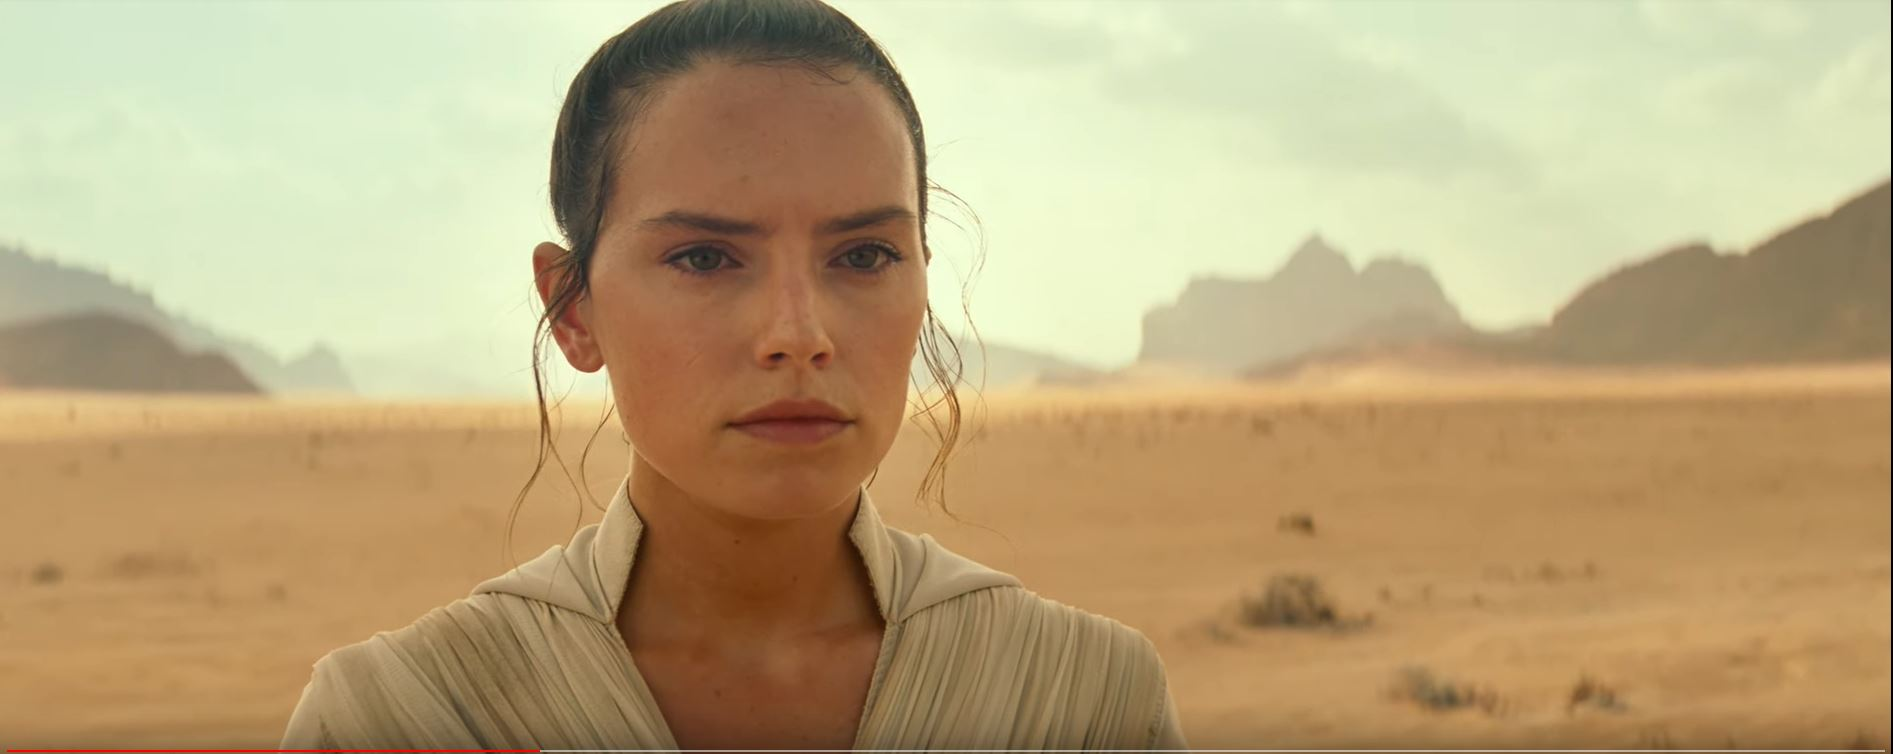 Star Wars The Rise of Skywalker Rey training in the desert